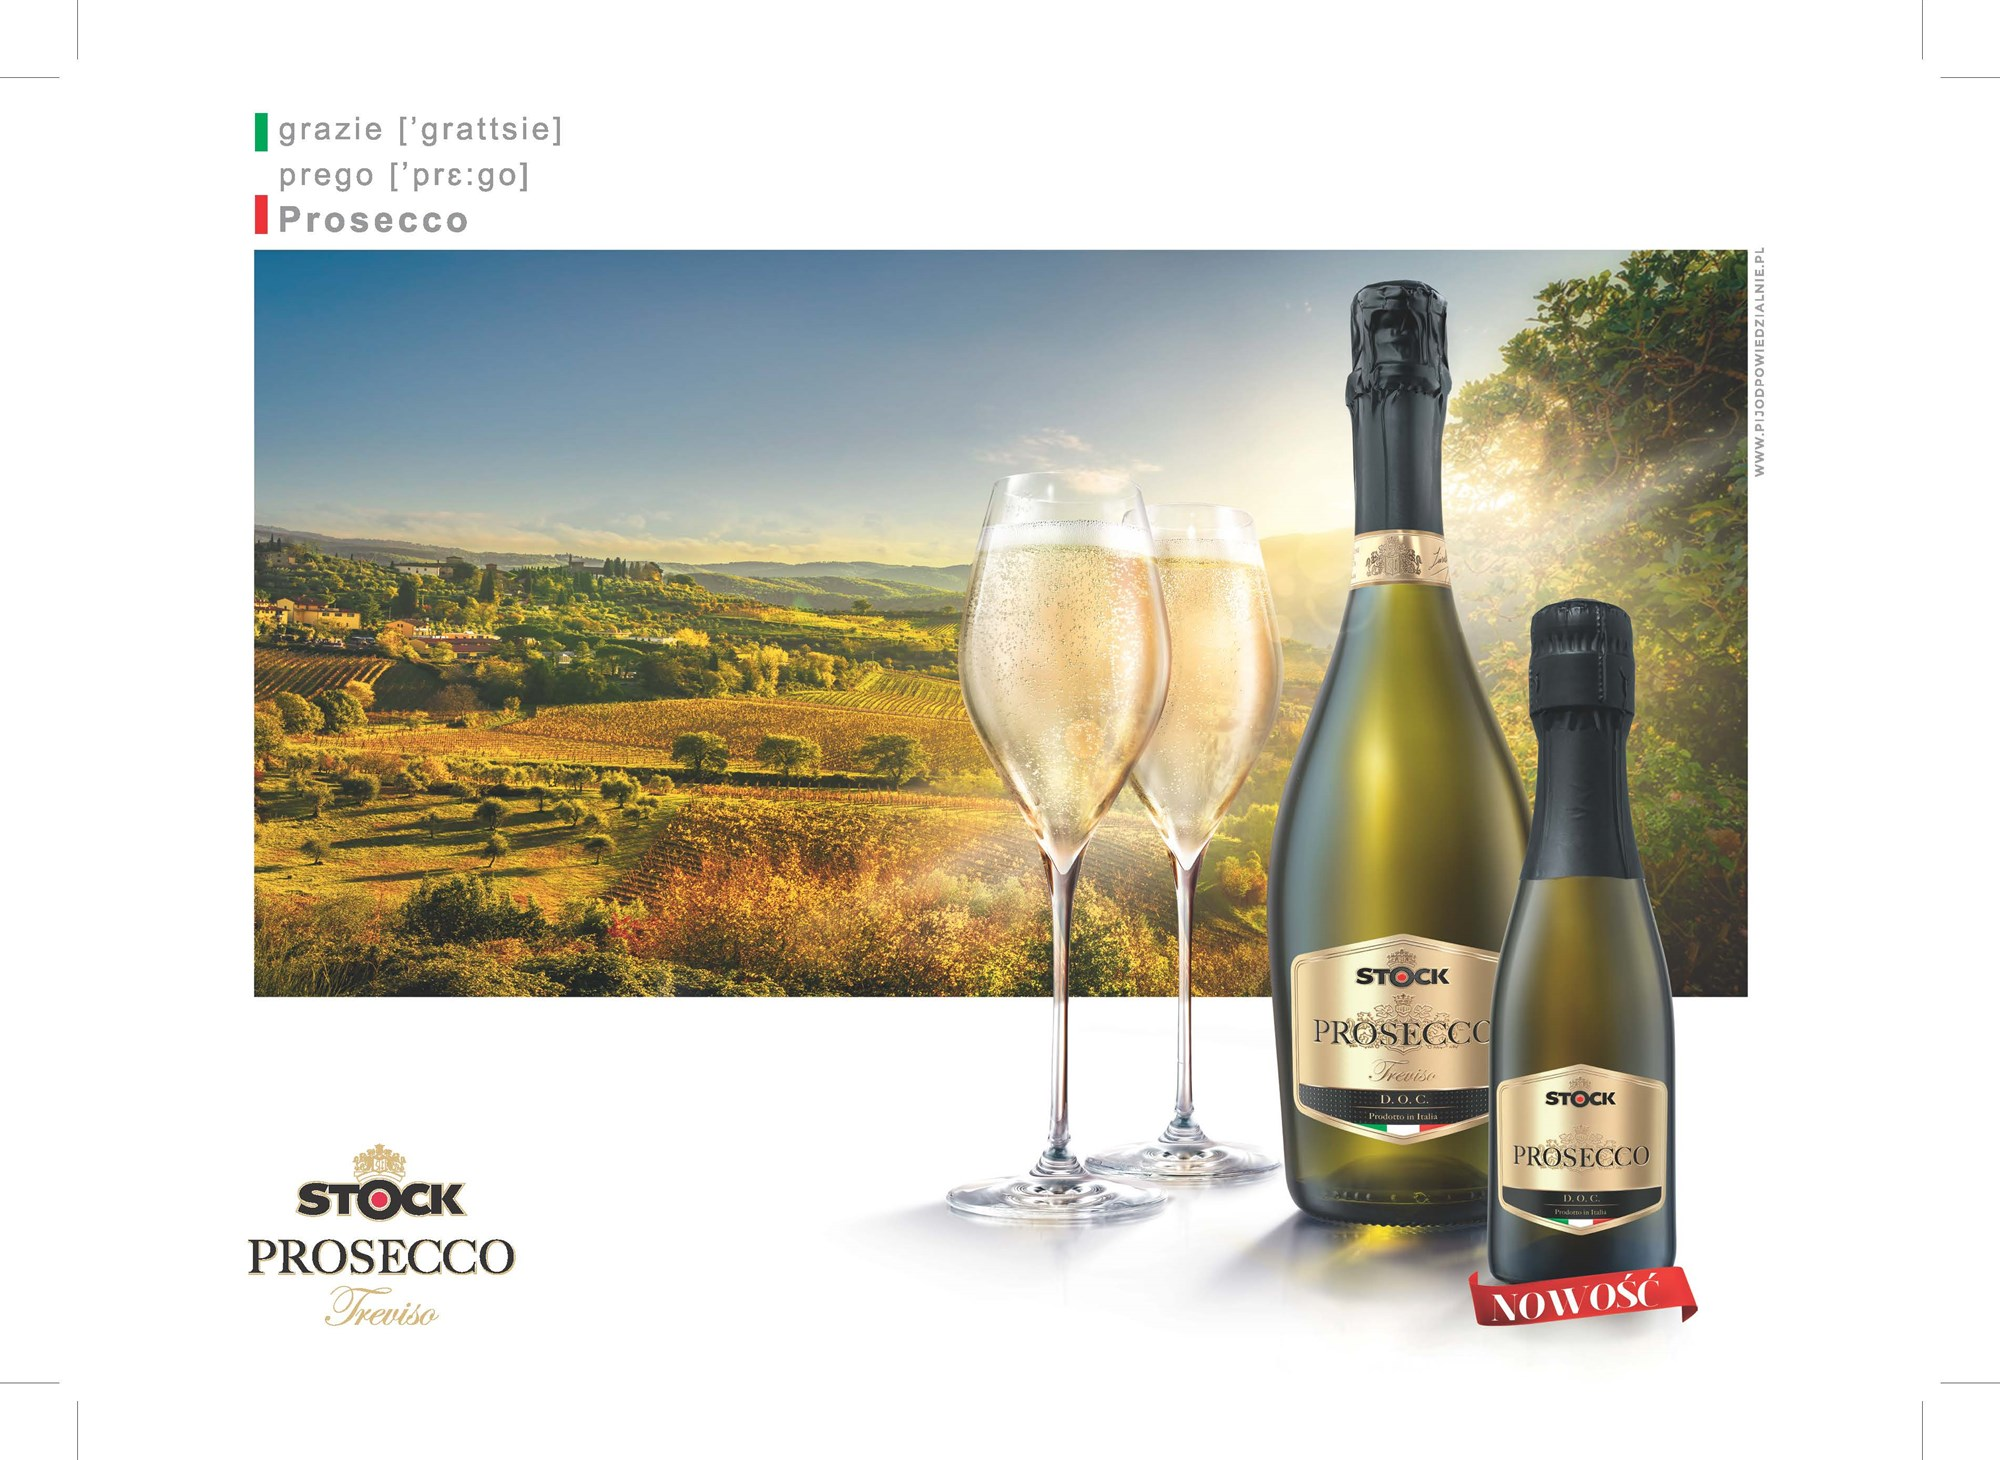 Stock Prosecco now available in 200ml format